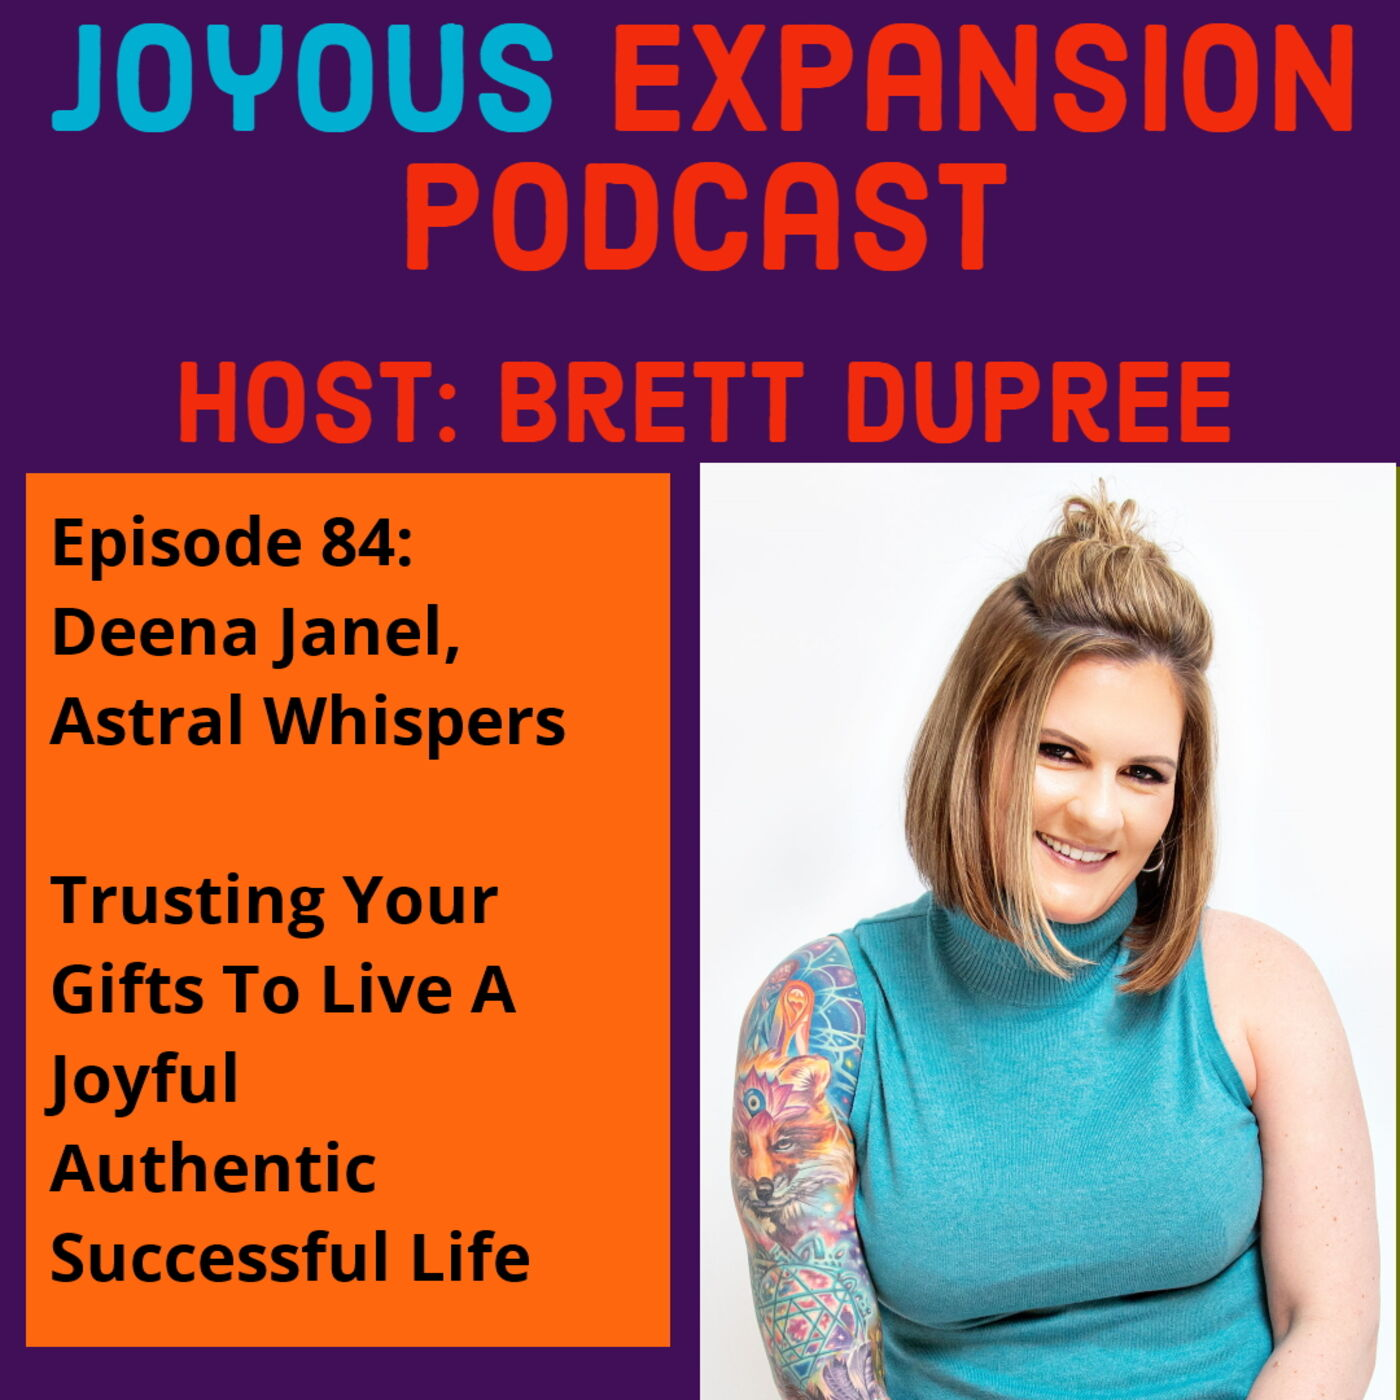 Joyous Expansion #84 - Deena Janel - Trusting  Your Gifts To Live A Joyful Authentic Successful Life